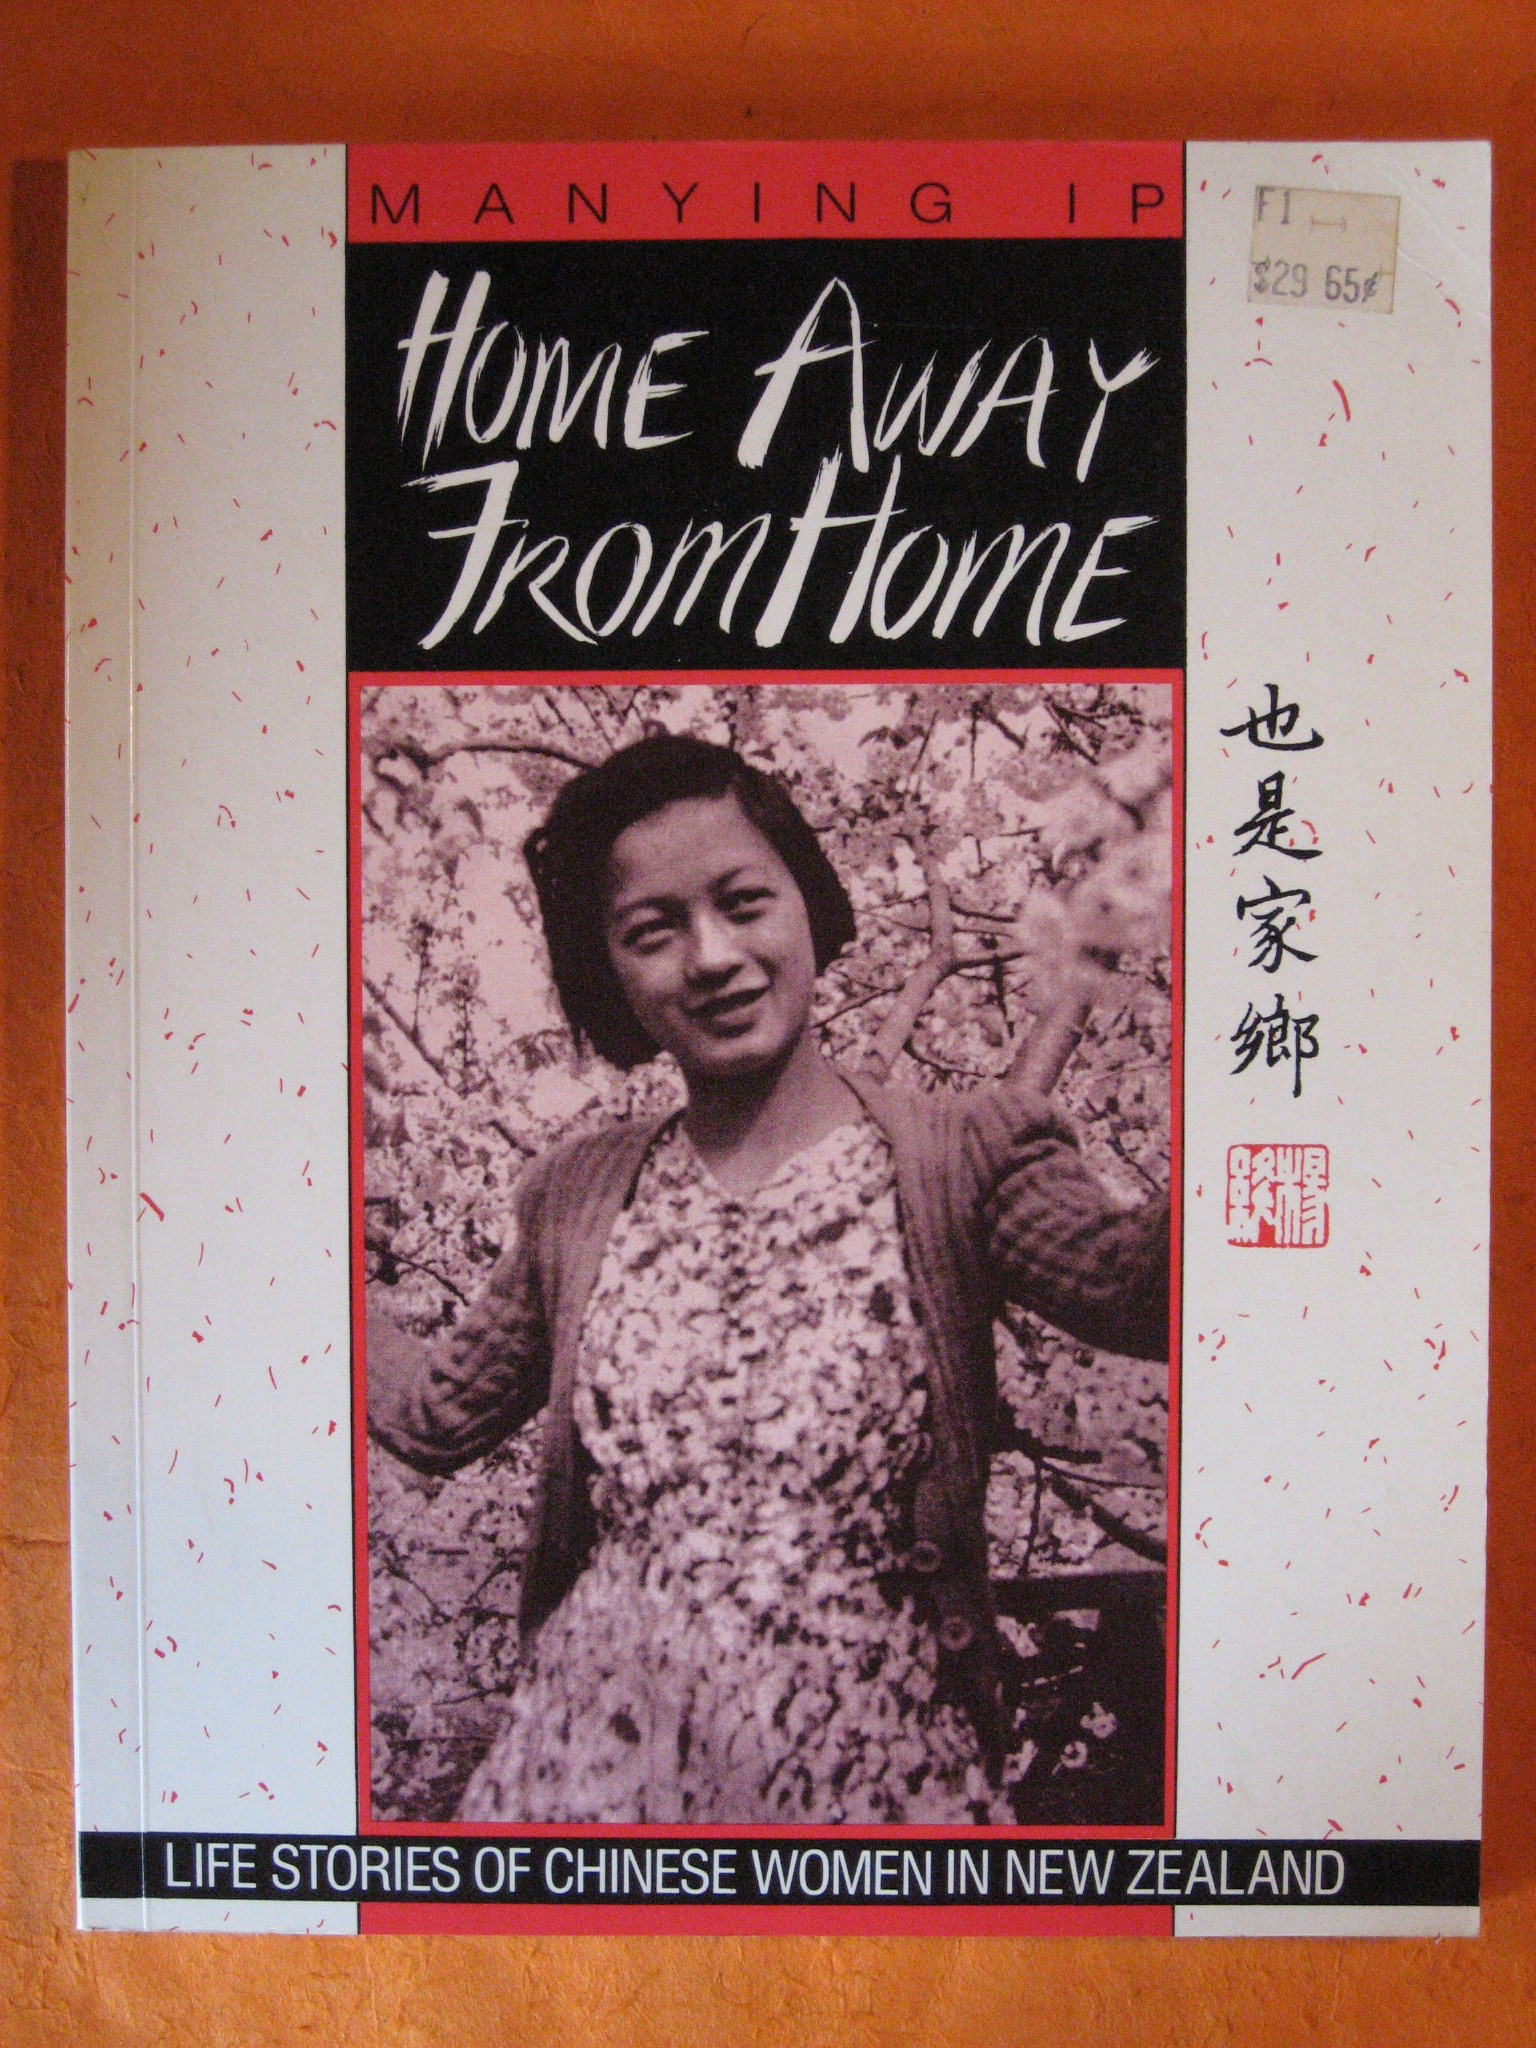 Home away from home: Life stories of Chinese women in New Zealand, Ip, Manying